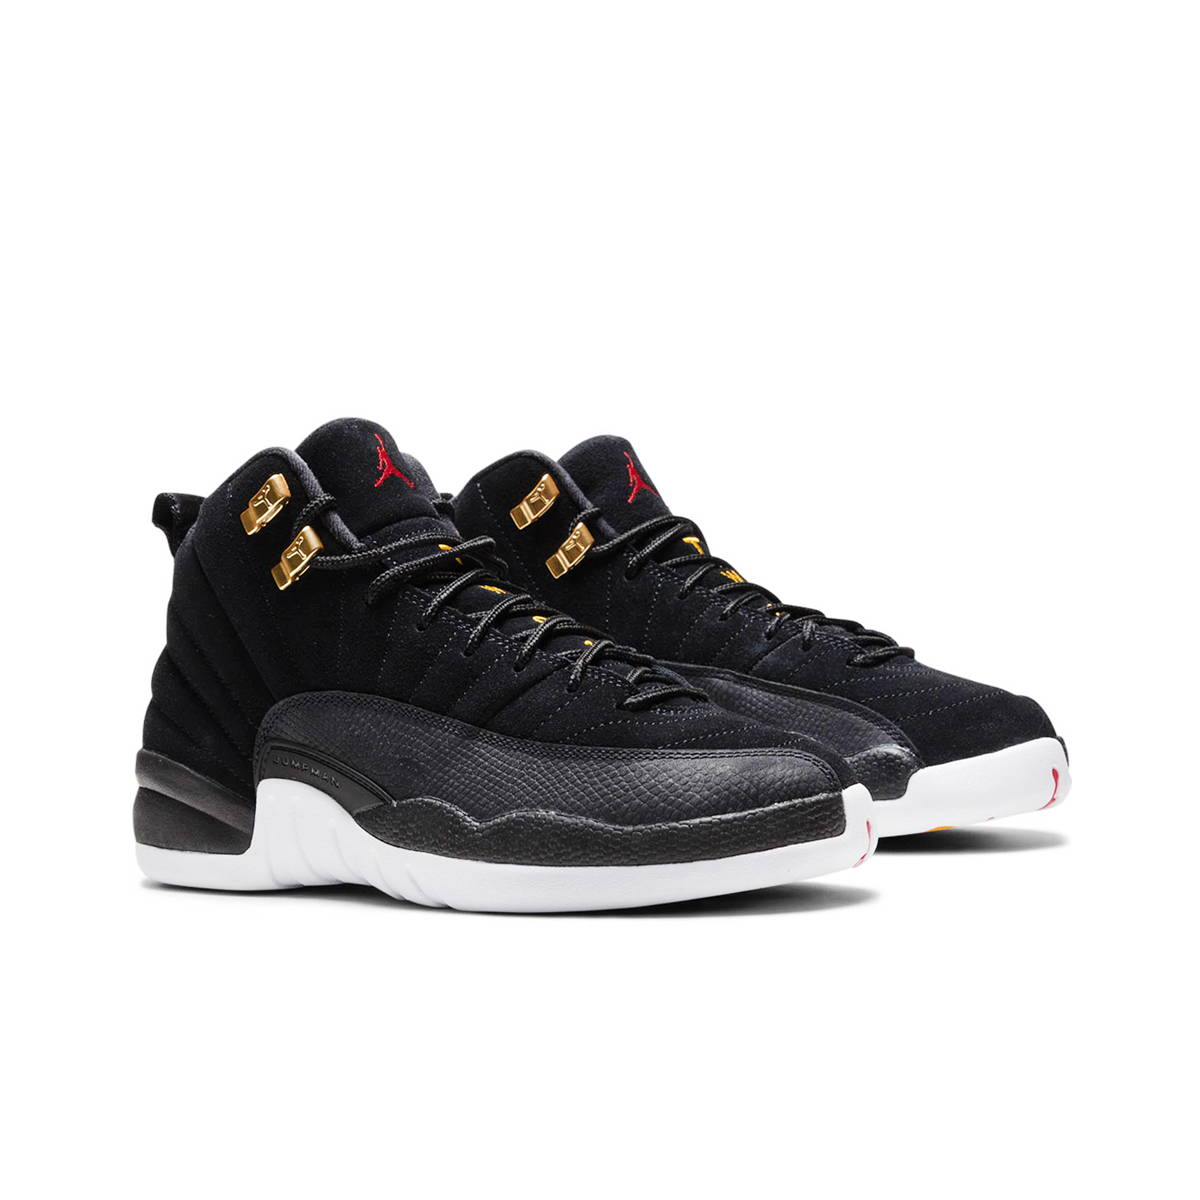 10/31/19  Air Jordan 12 Retro (GS) QS – Bodega